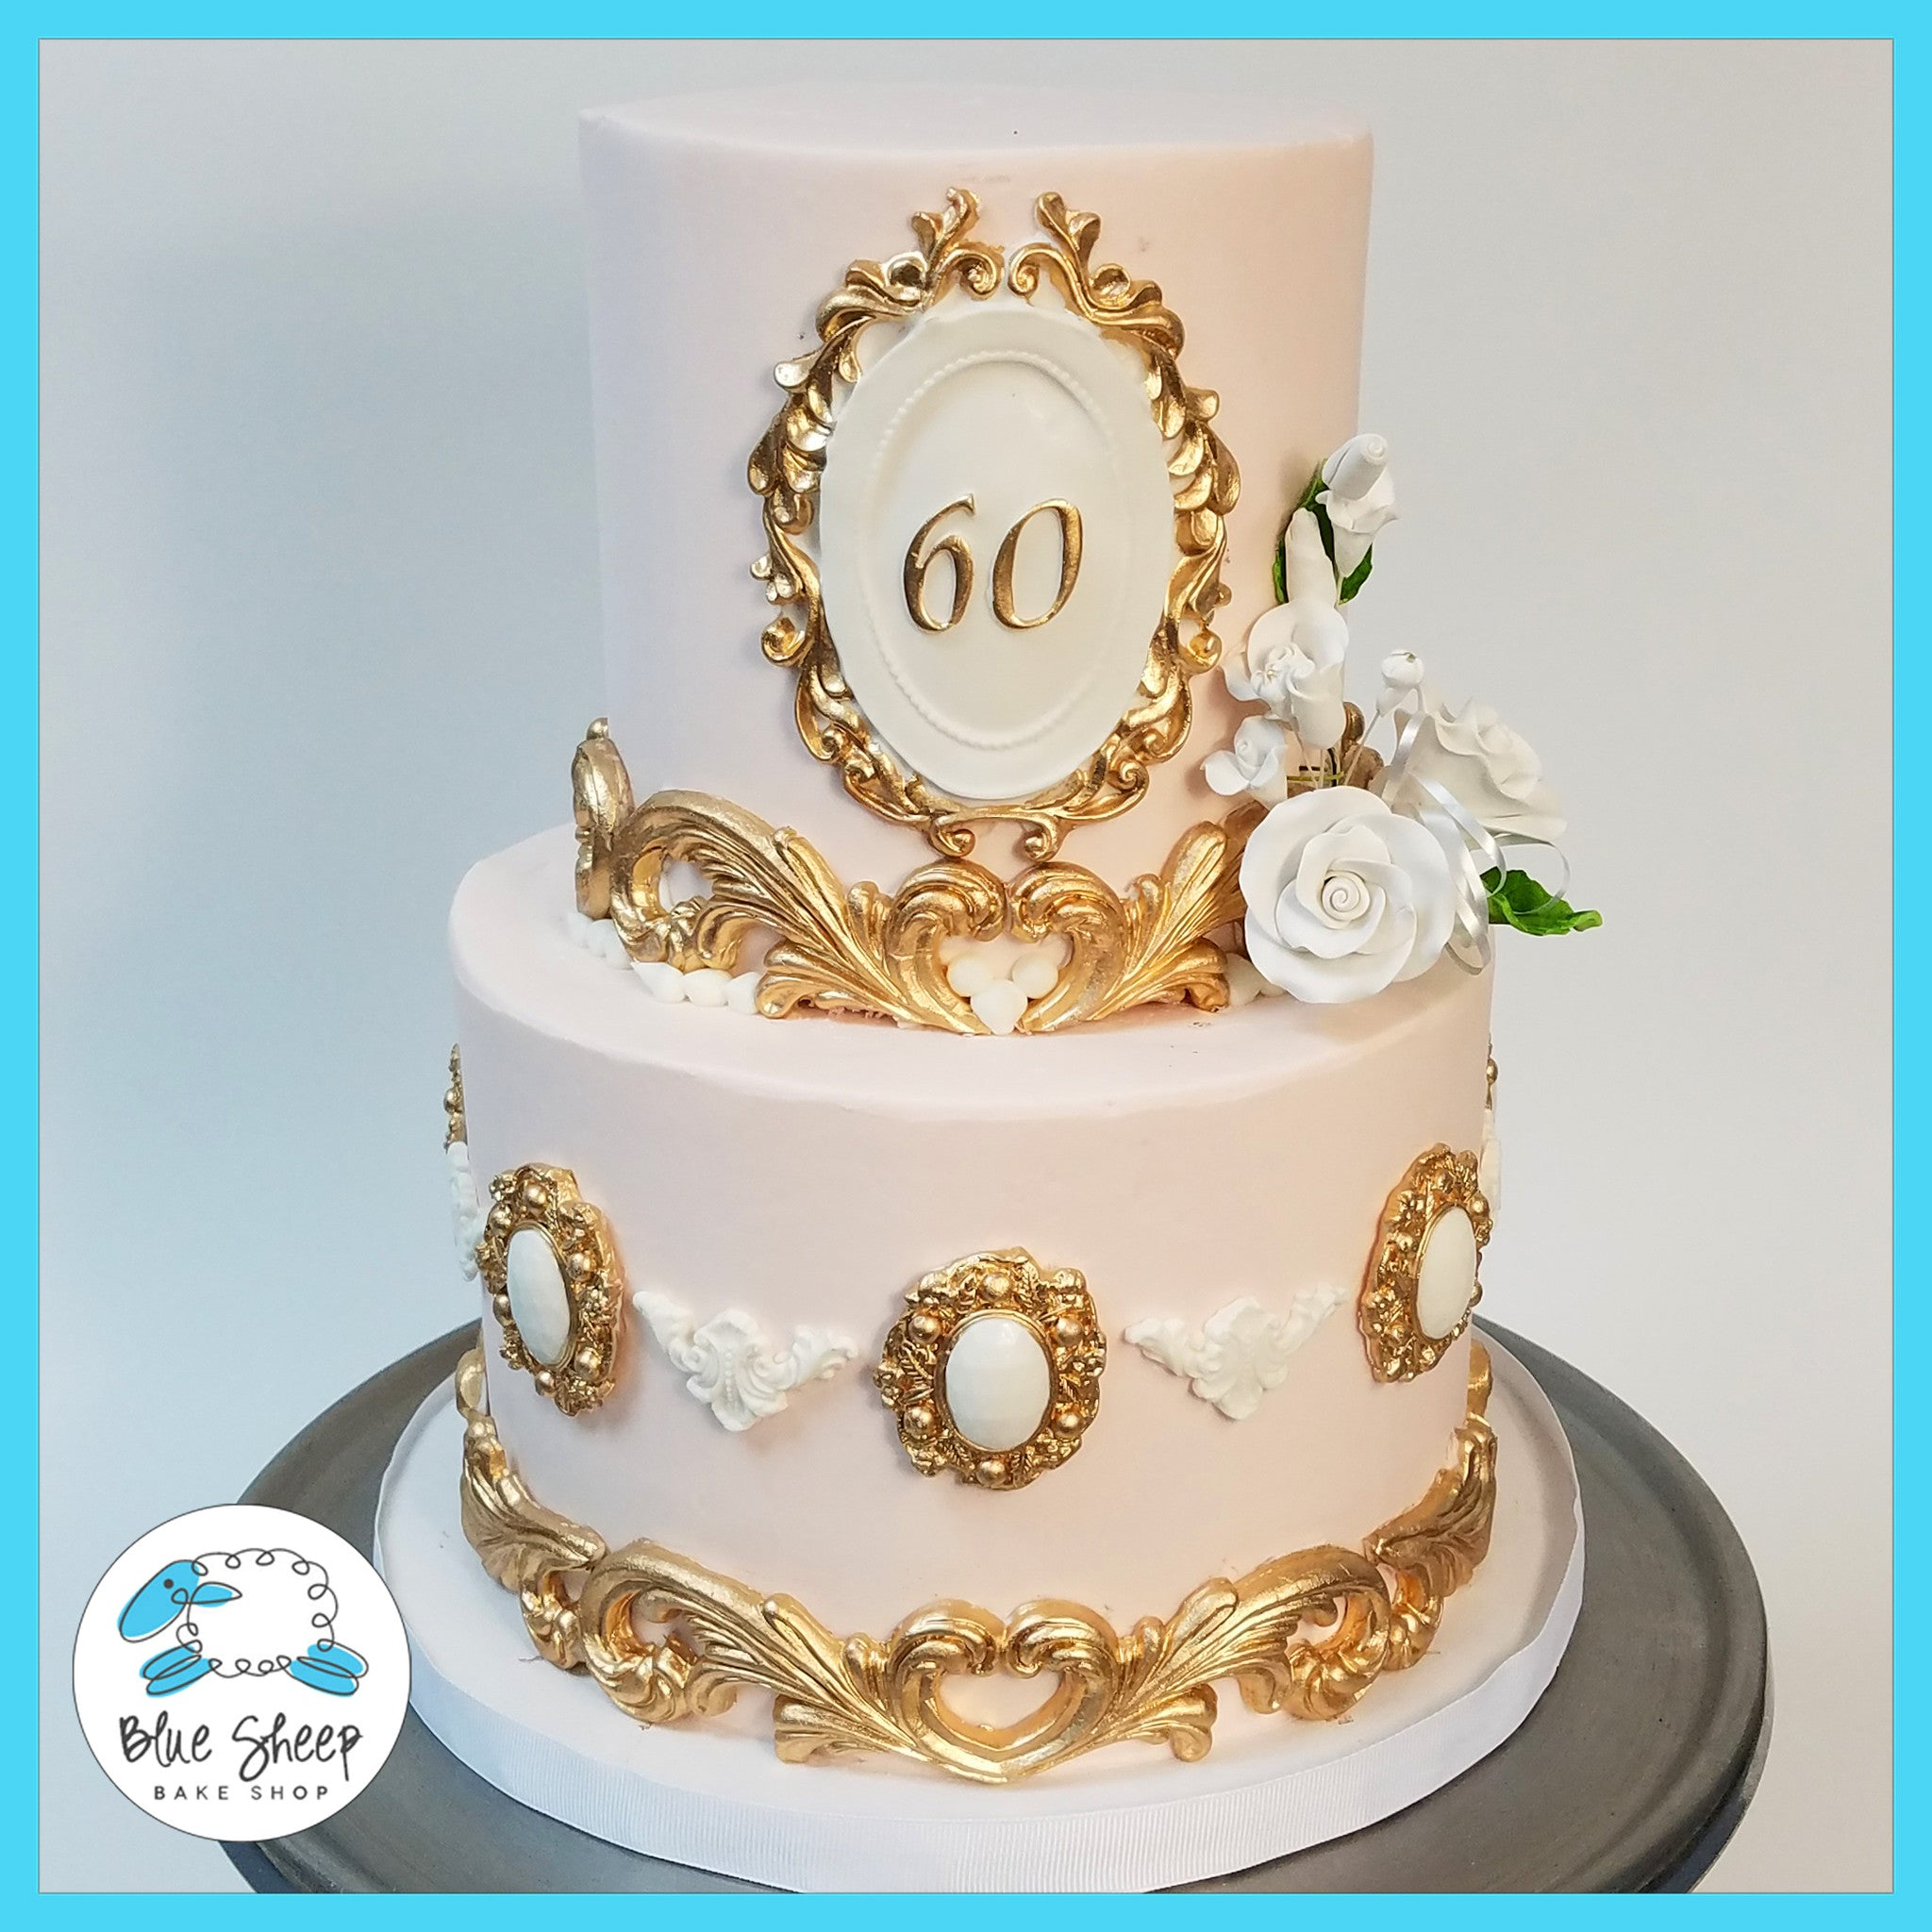 Pink And Gold Vintage 60th Birthday Cake Nj Blue Sheep Bake Shop